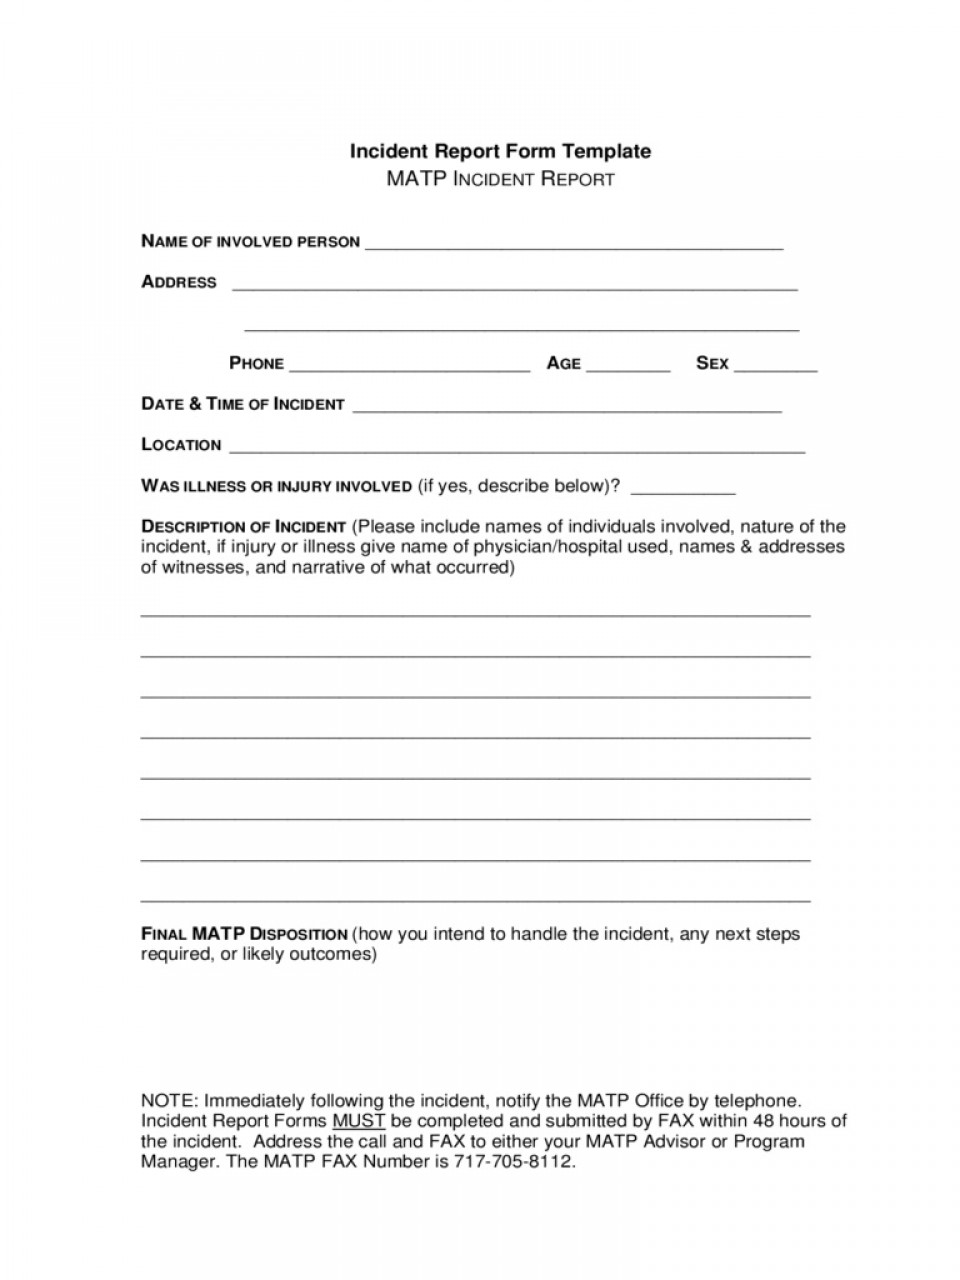 Incident Report Form Template Word New  Downloadable Free960